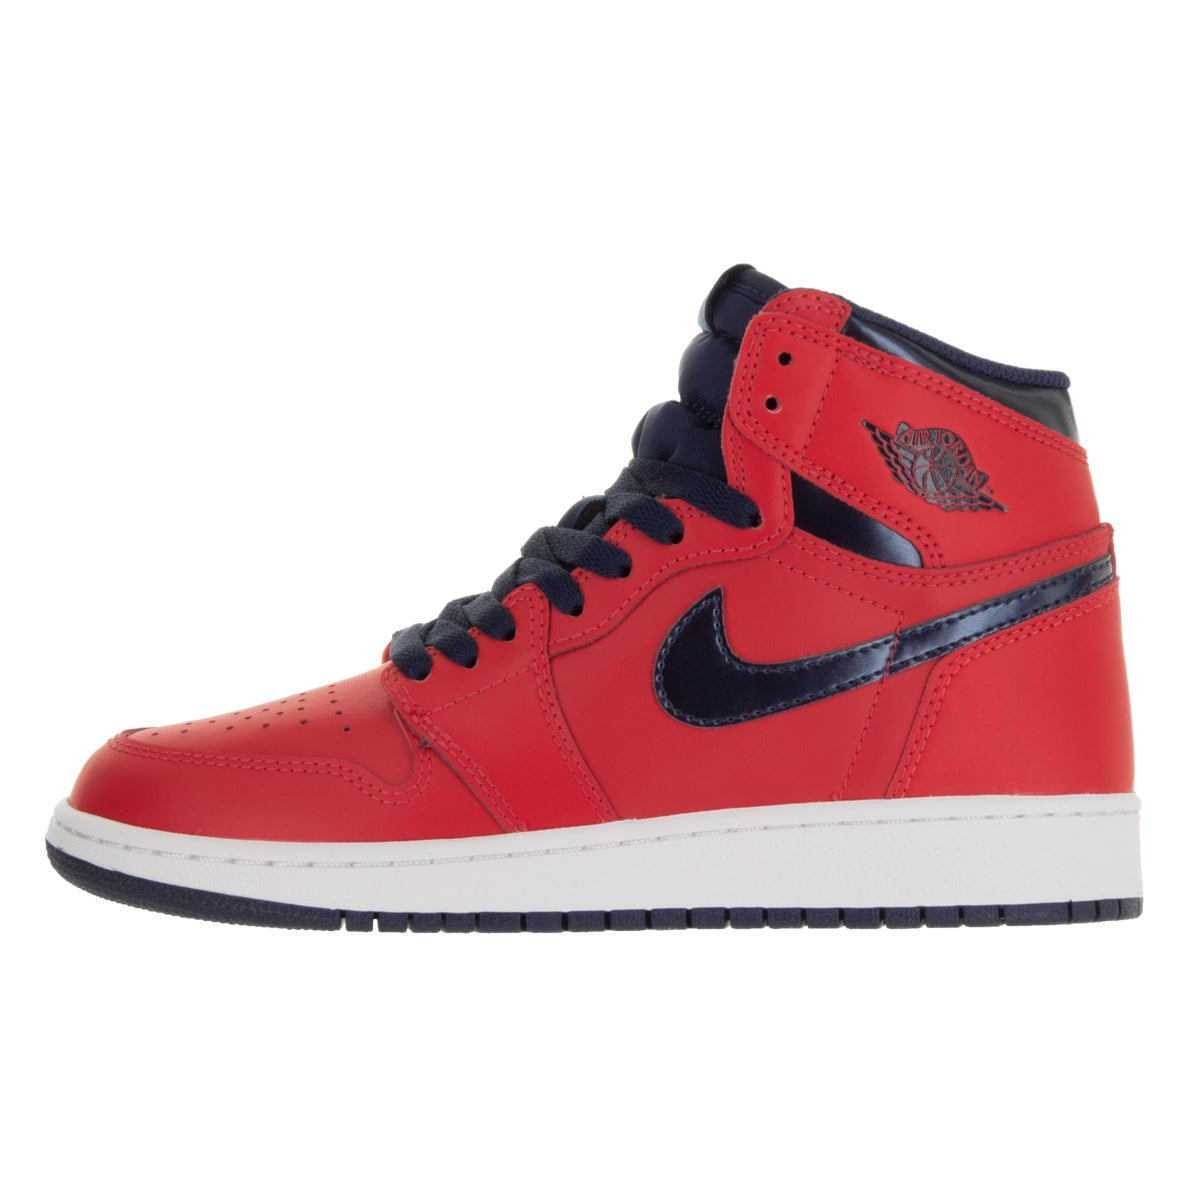 huge selection of 895e2 dd21f Shop Nike Jordan Kids  Air Jordan 1 Retro High Red and Navy Blue Leather Basketball  Shoes - Free Shipping Today - Overstock - 13394587